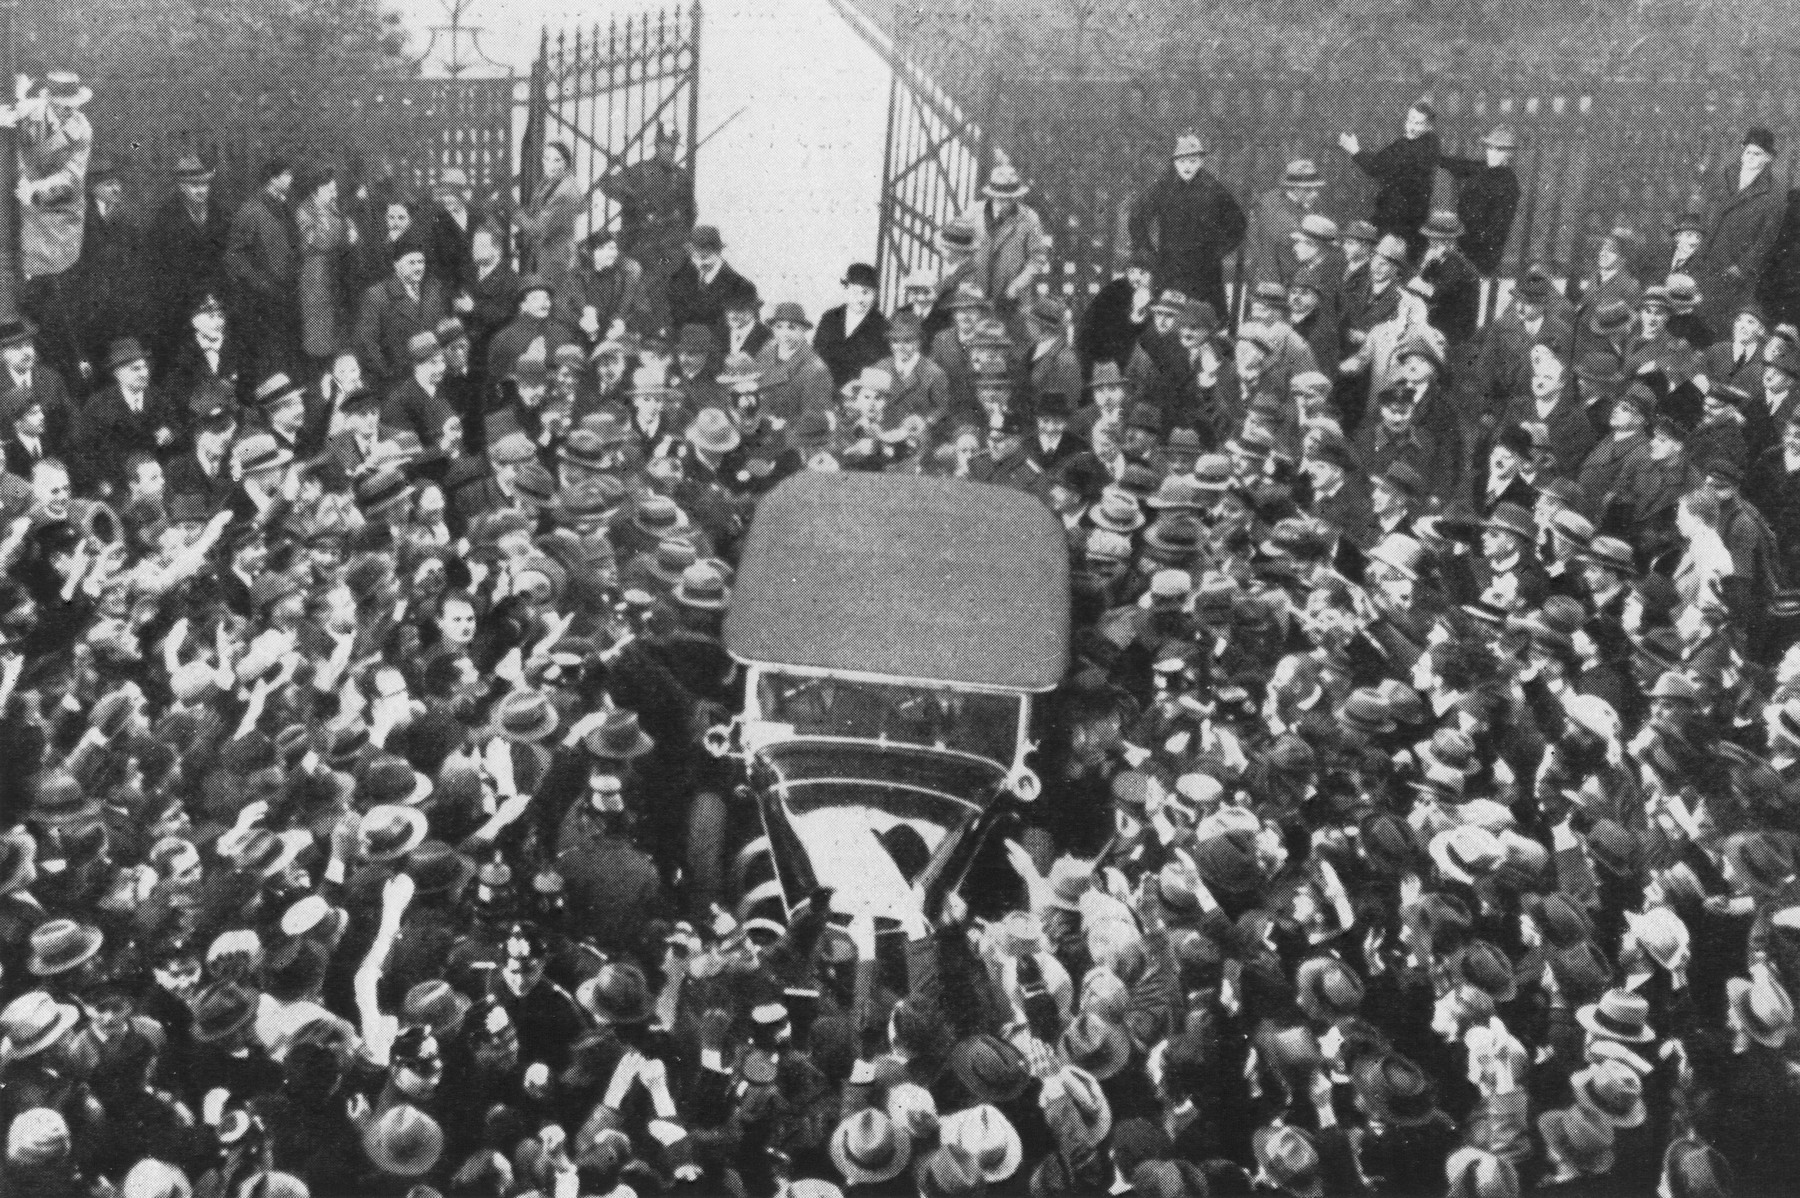 An automobile in which Adolf Hitler is riding moves through a crowd of supporters as it leaves the Chancellery after Hitler's meeting with President Paul von Hindenburg.